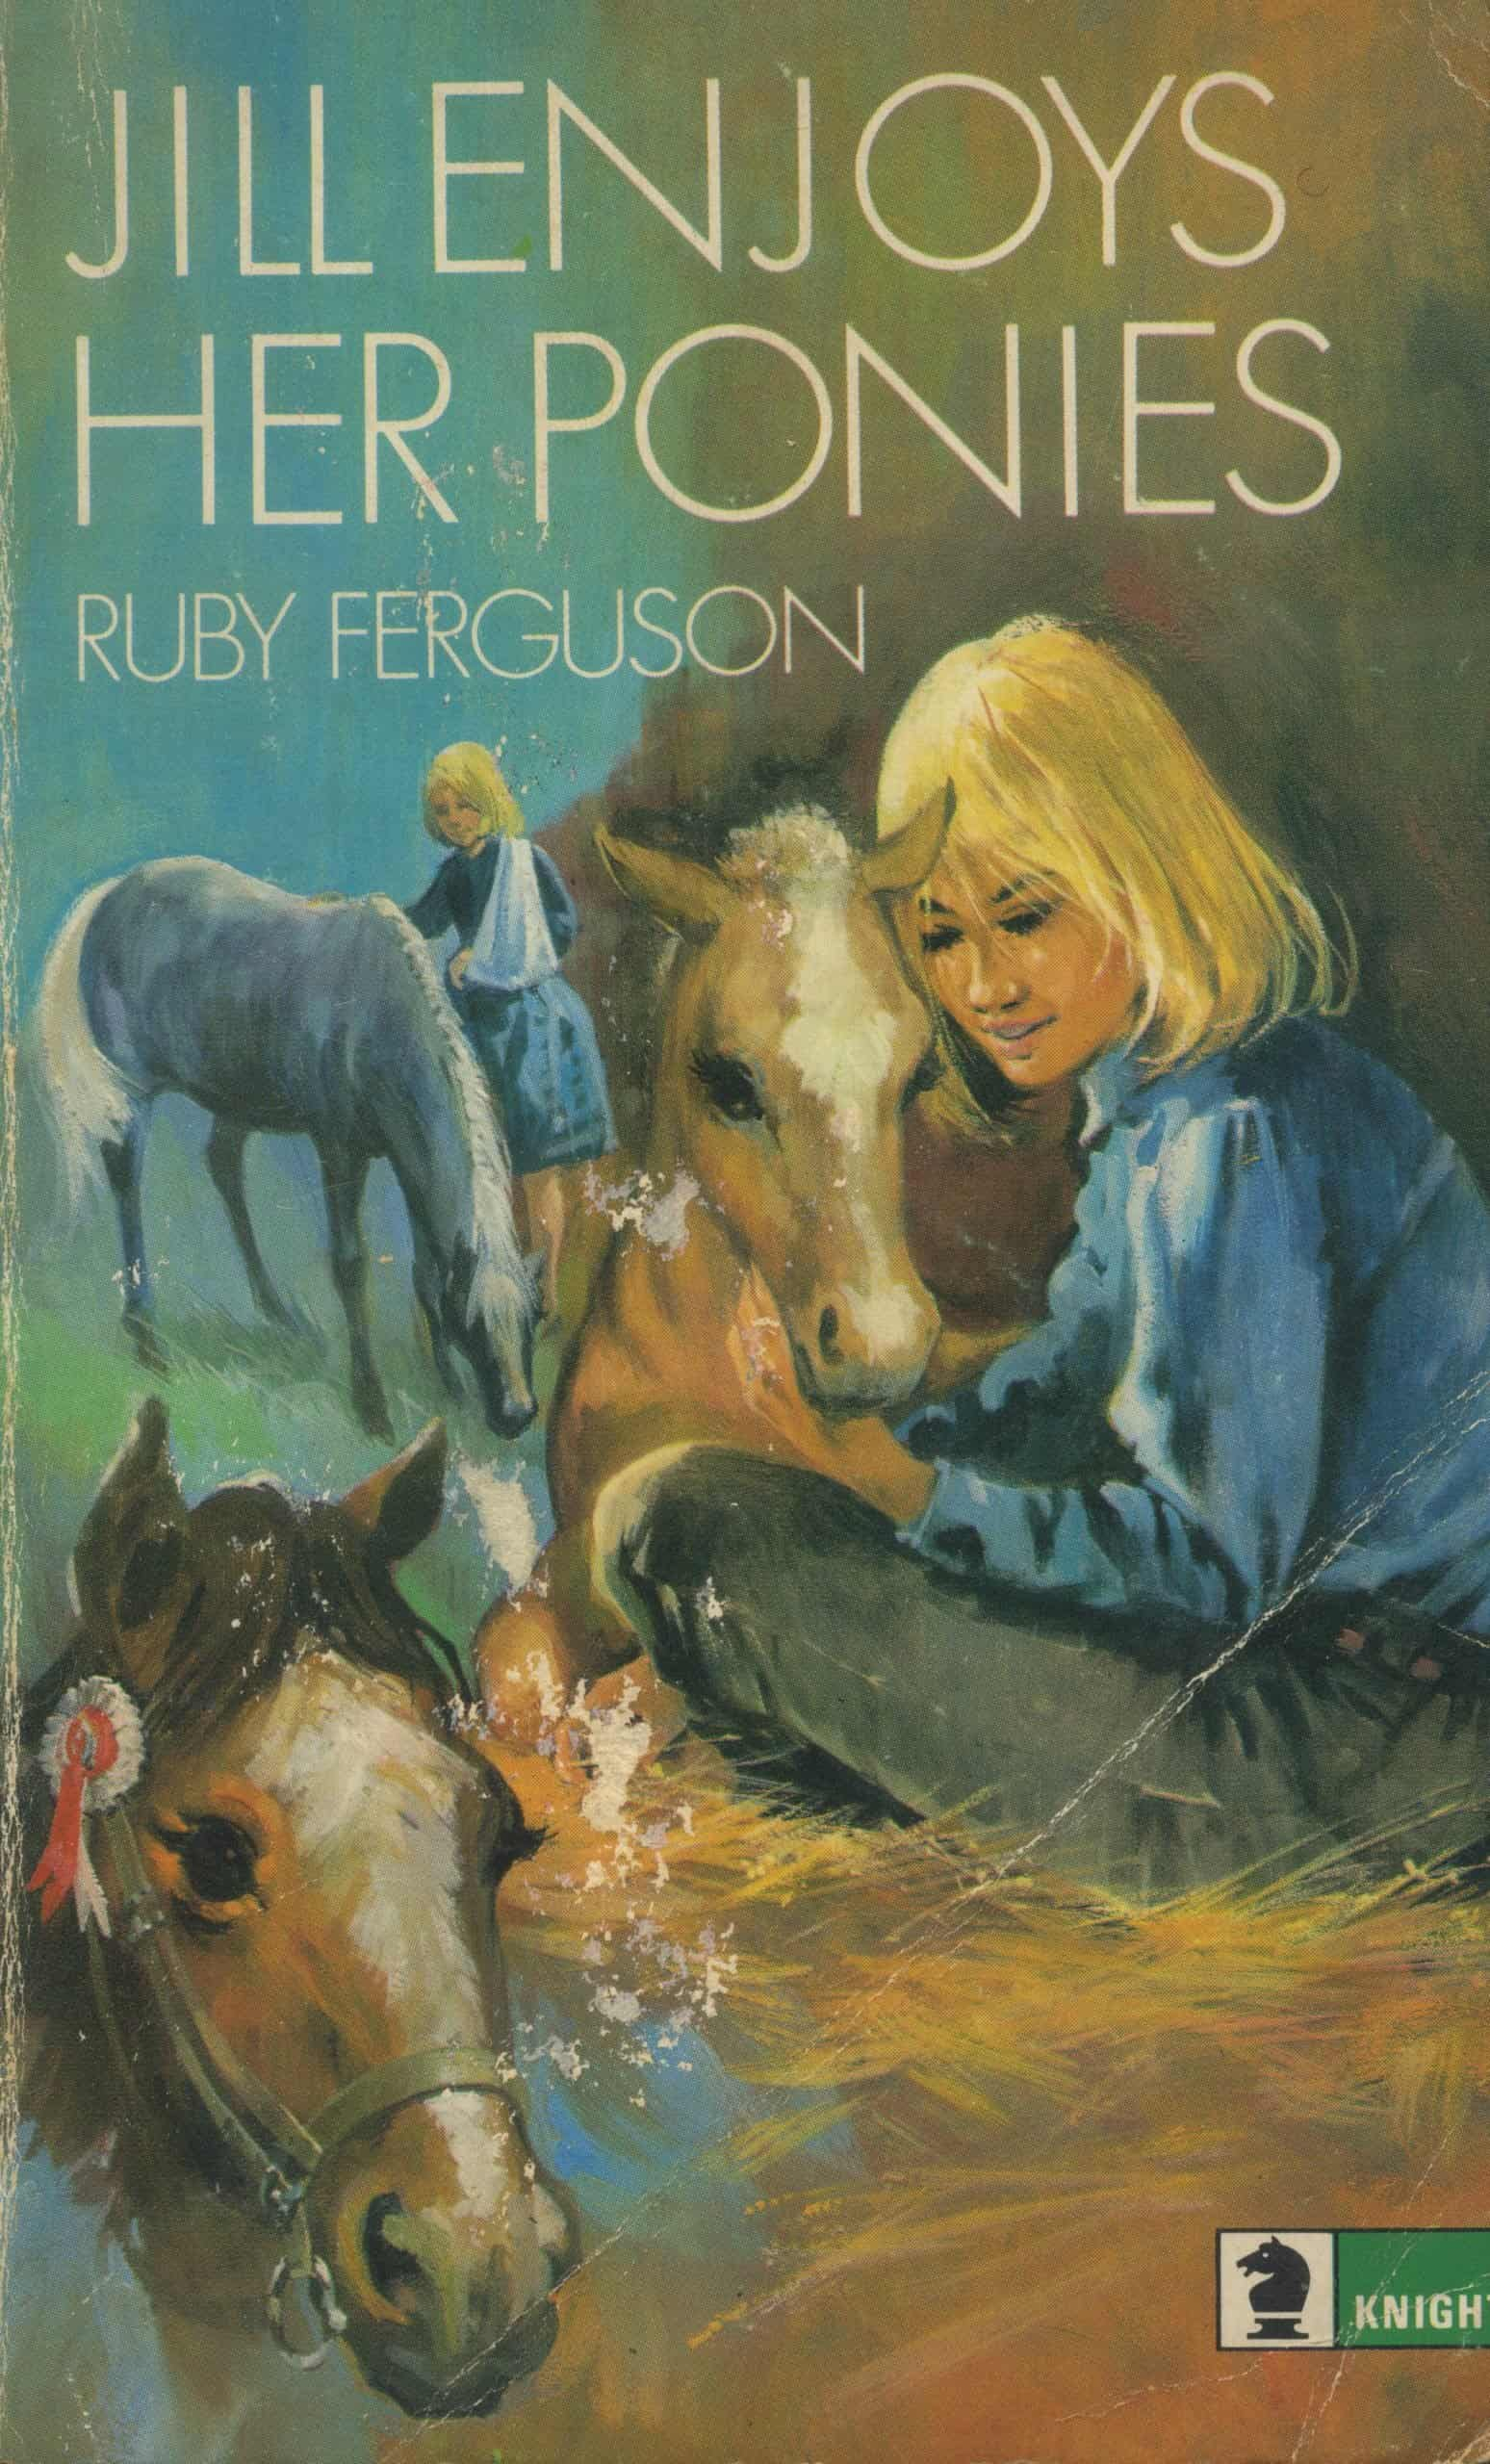 Jill Enjoys her Ponies Book Ruby Ferguson